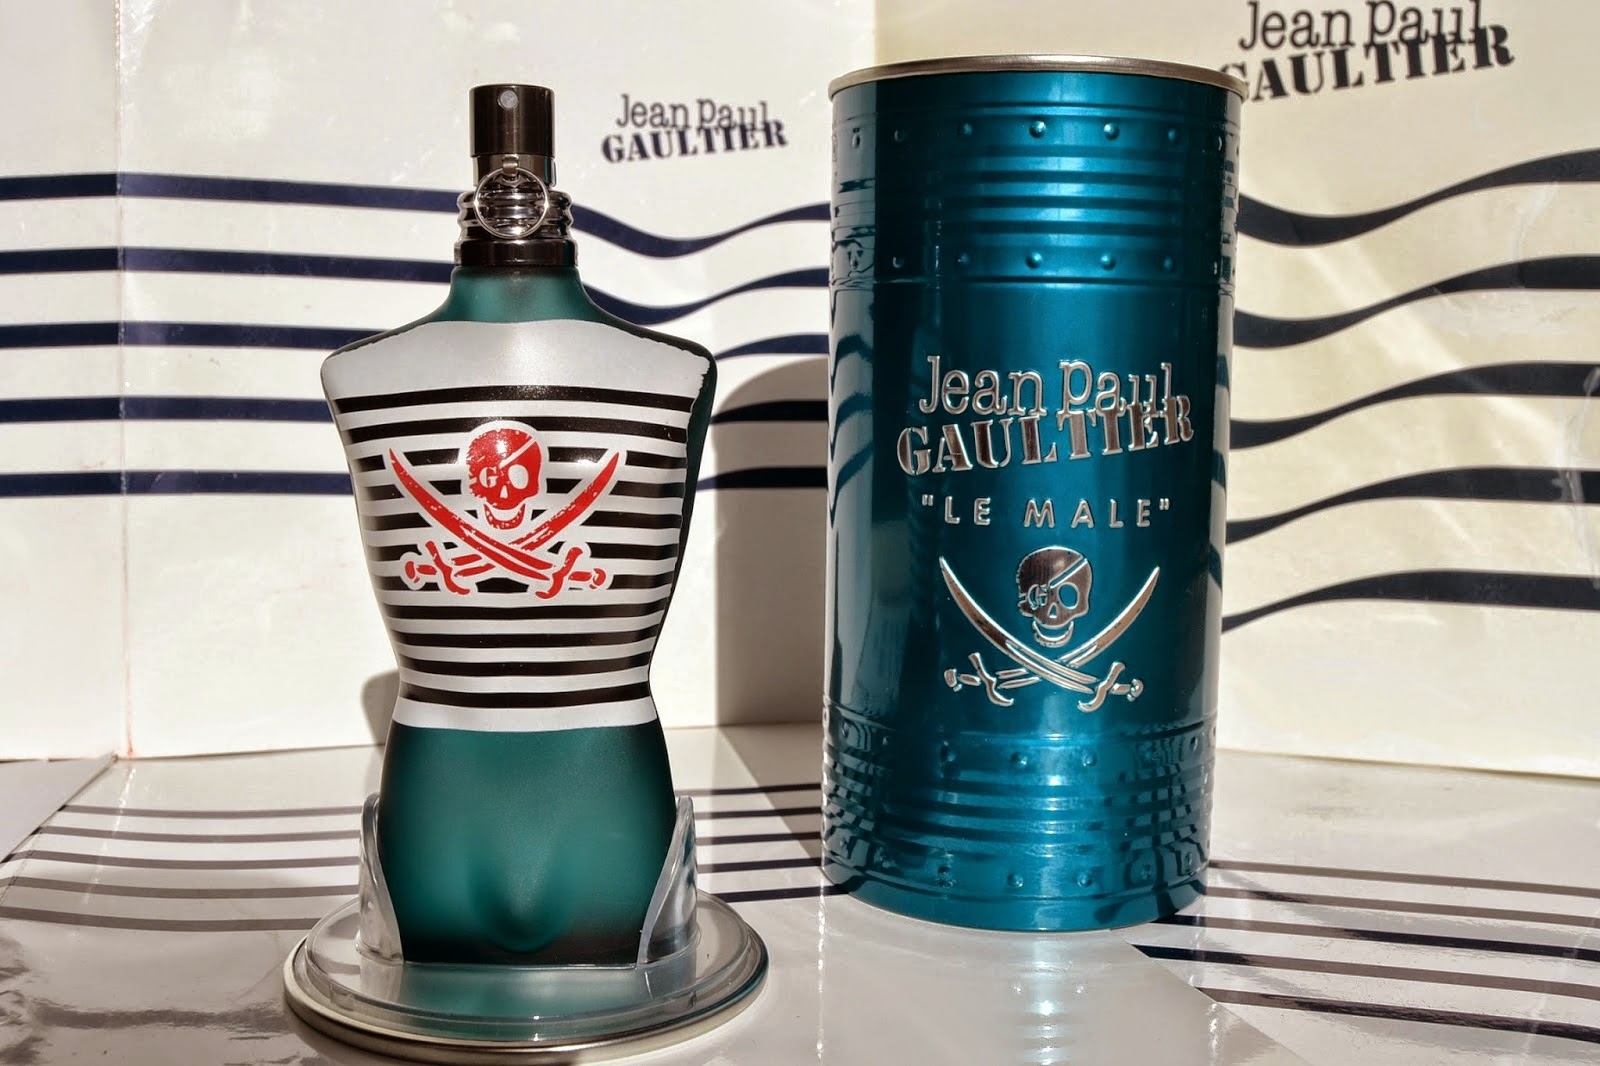 http://www.syriouslyinfashion.com/2015/02/jean-paul-gaultier-le-male-classique-review-syriouslyinfashion.html